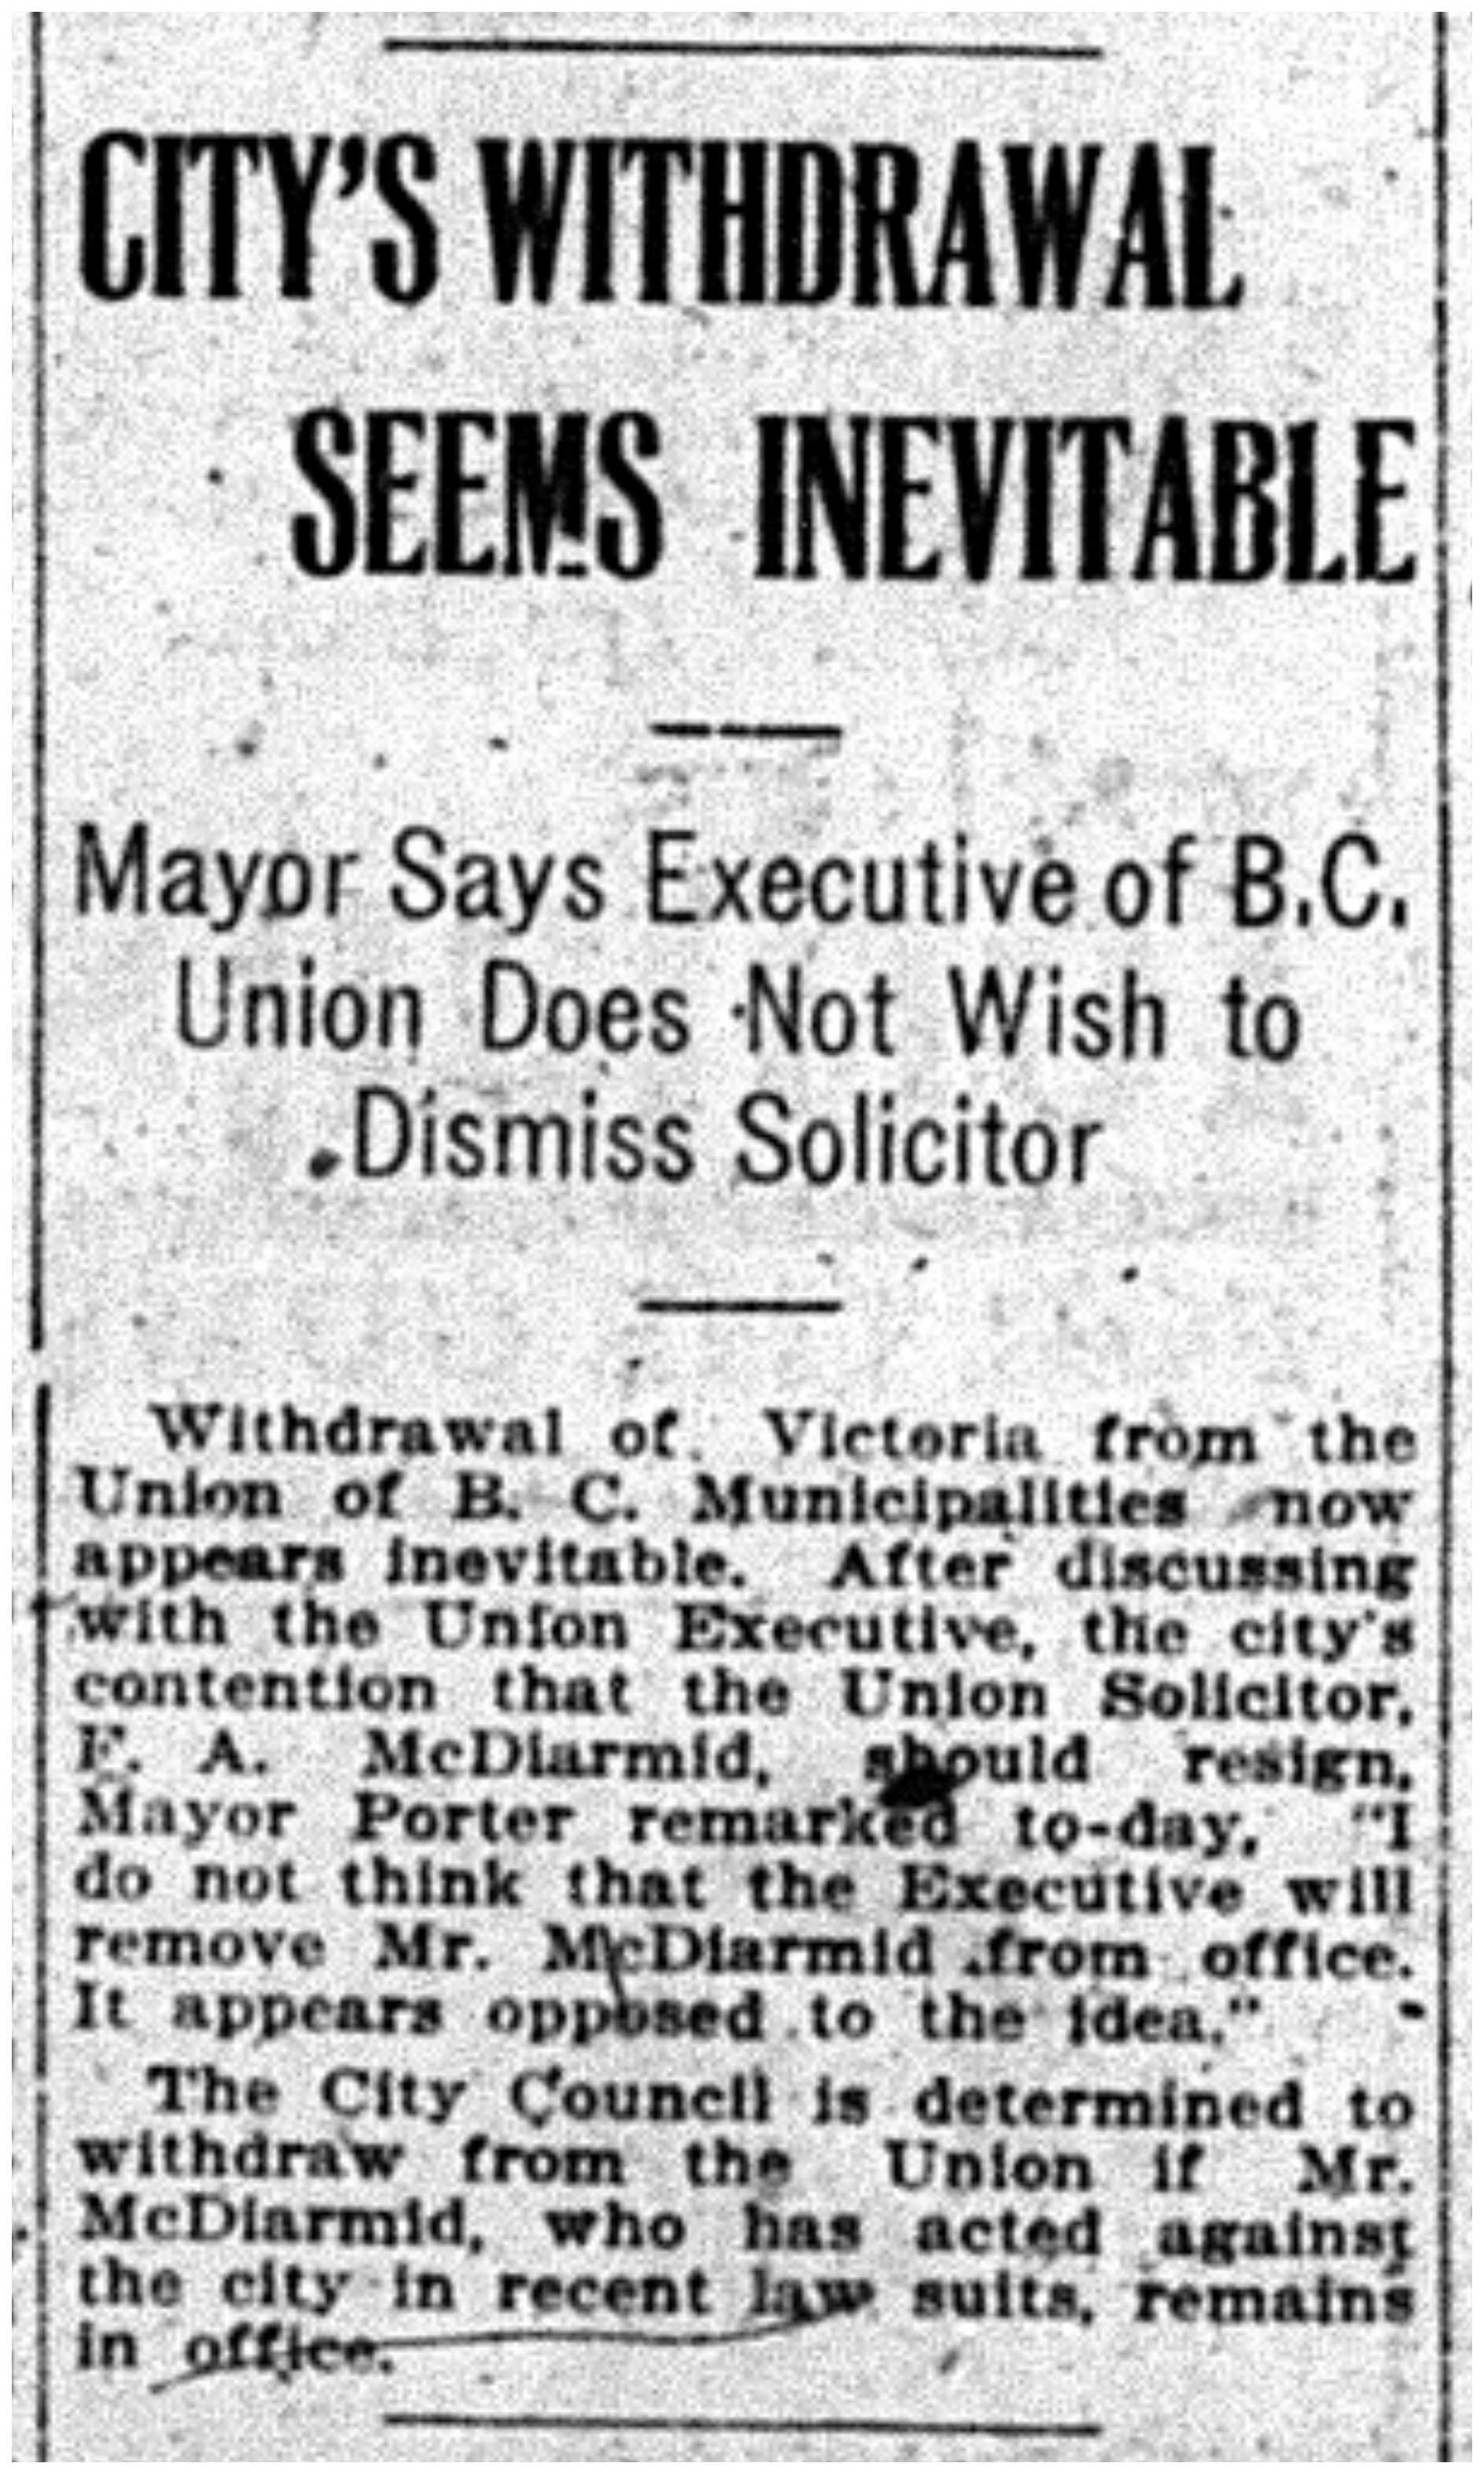 """City's Withdrawal Seems Inevitable: Mayor Says Executive of B.C. Union Does Not Wish to Dismiss Solicitor"""